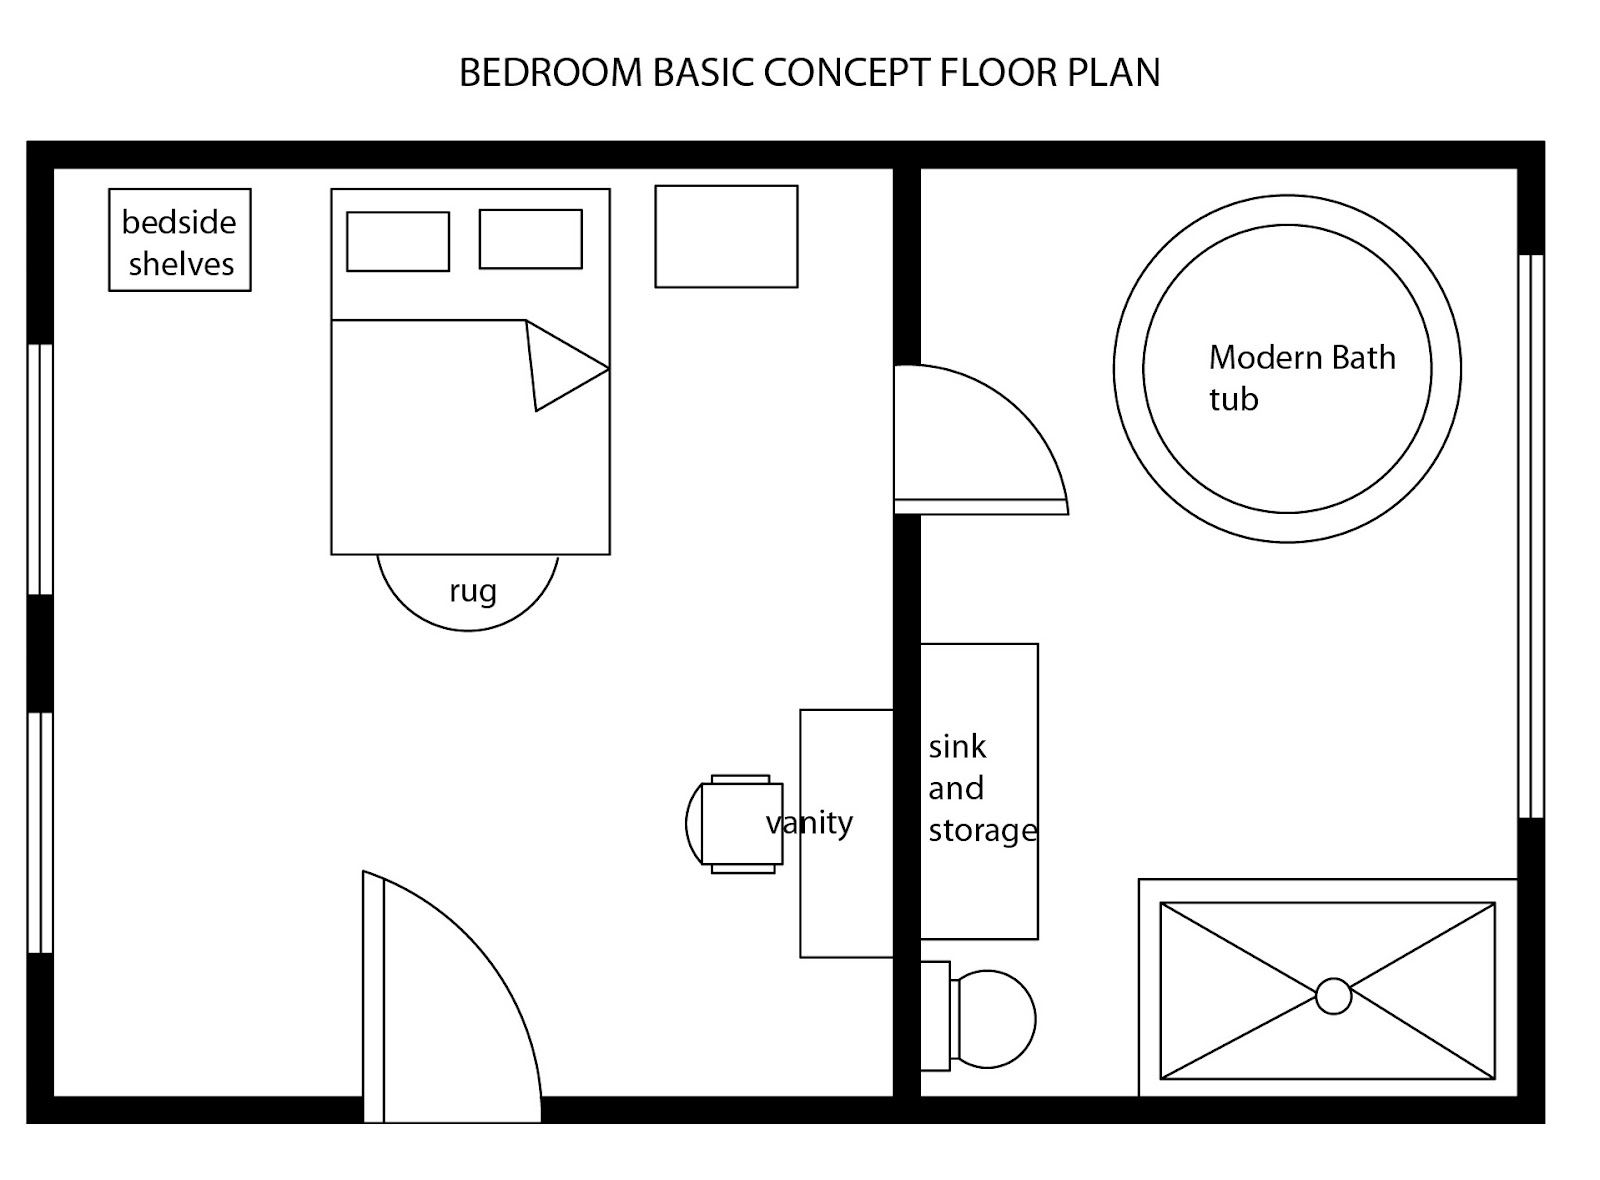 Interior design decor modern bedroom basic floor plan - Bed room plan ...